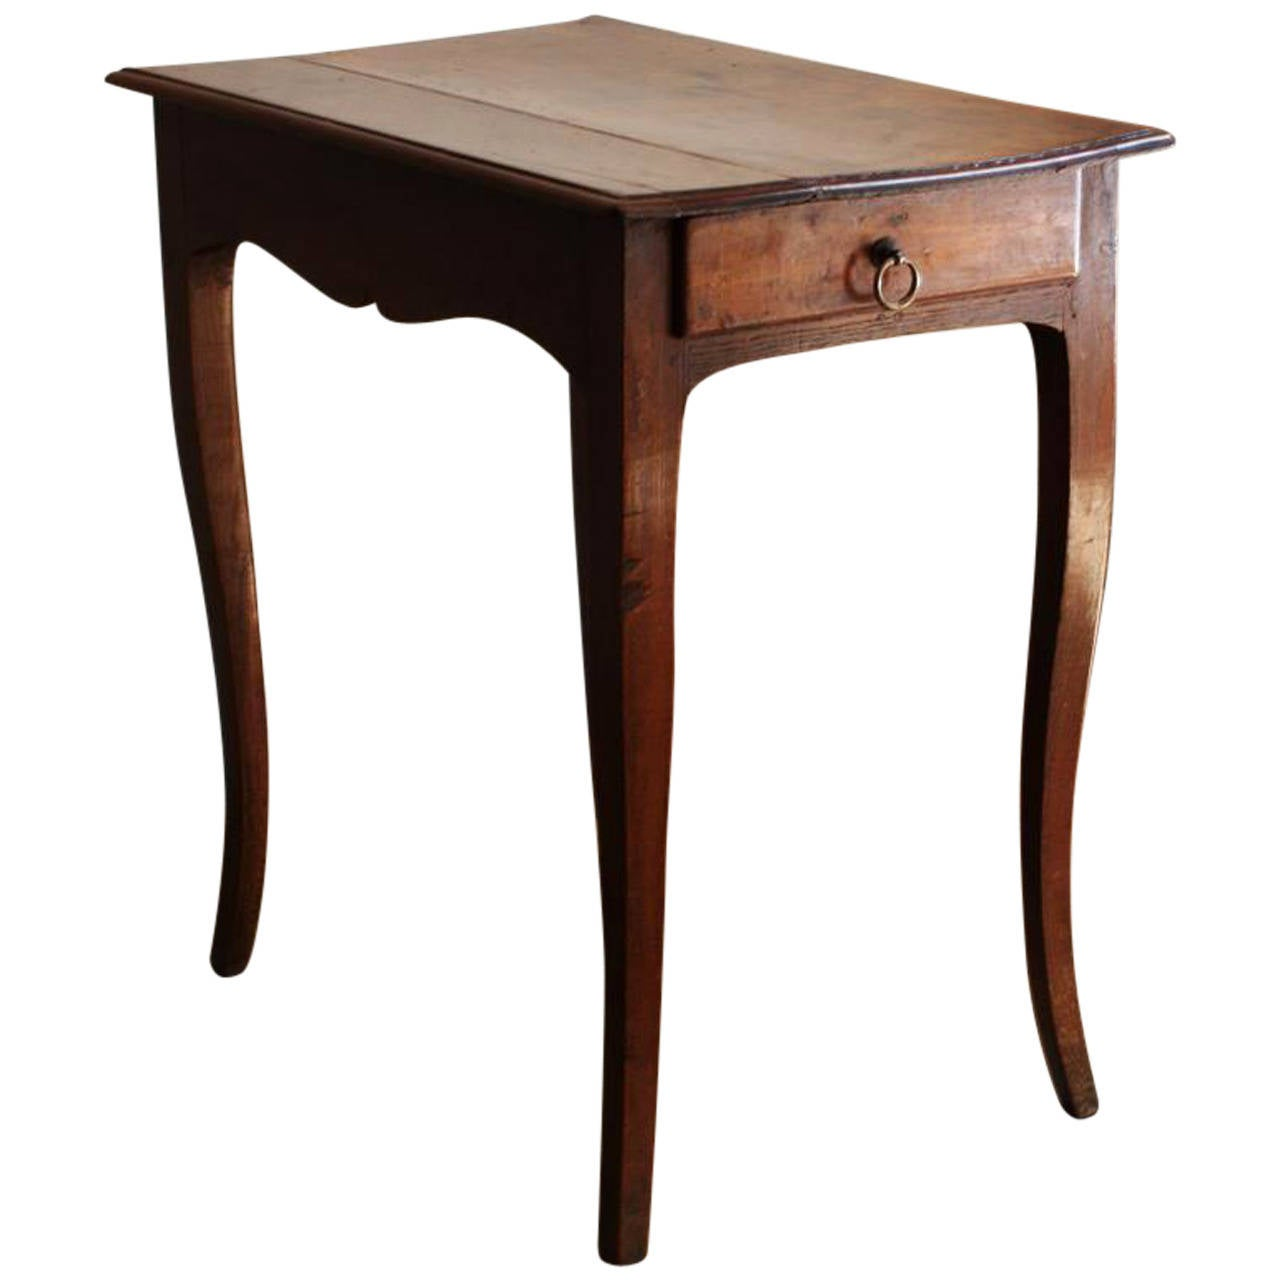 Great Louis XV Style Small Walnut Side Table With Curved Legs, 18th Century 1